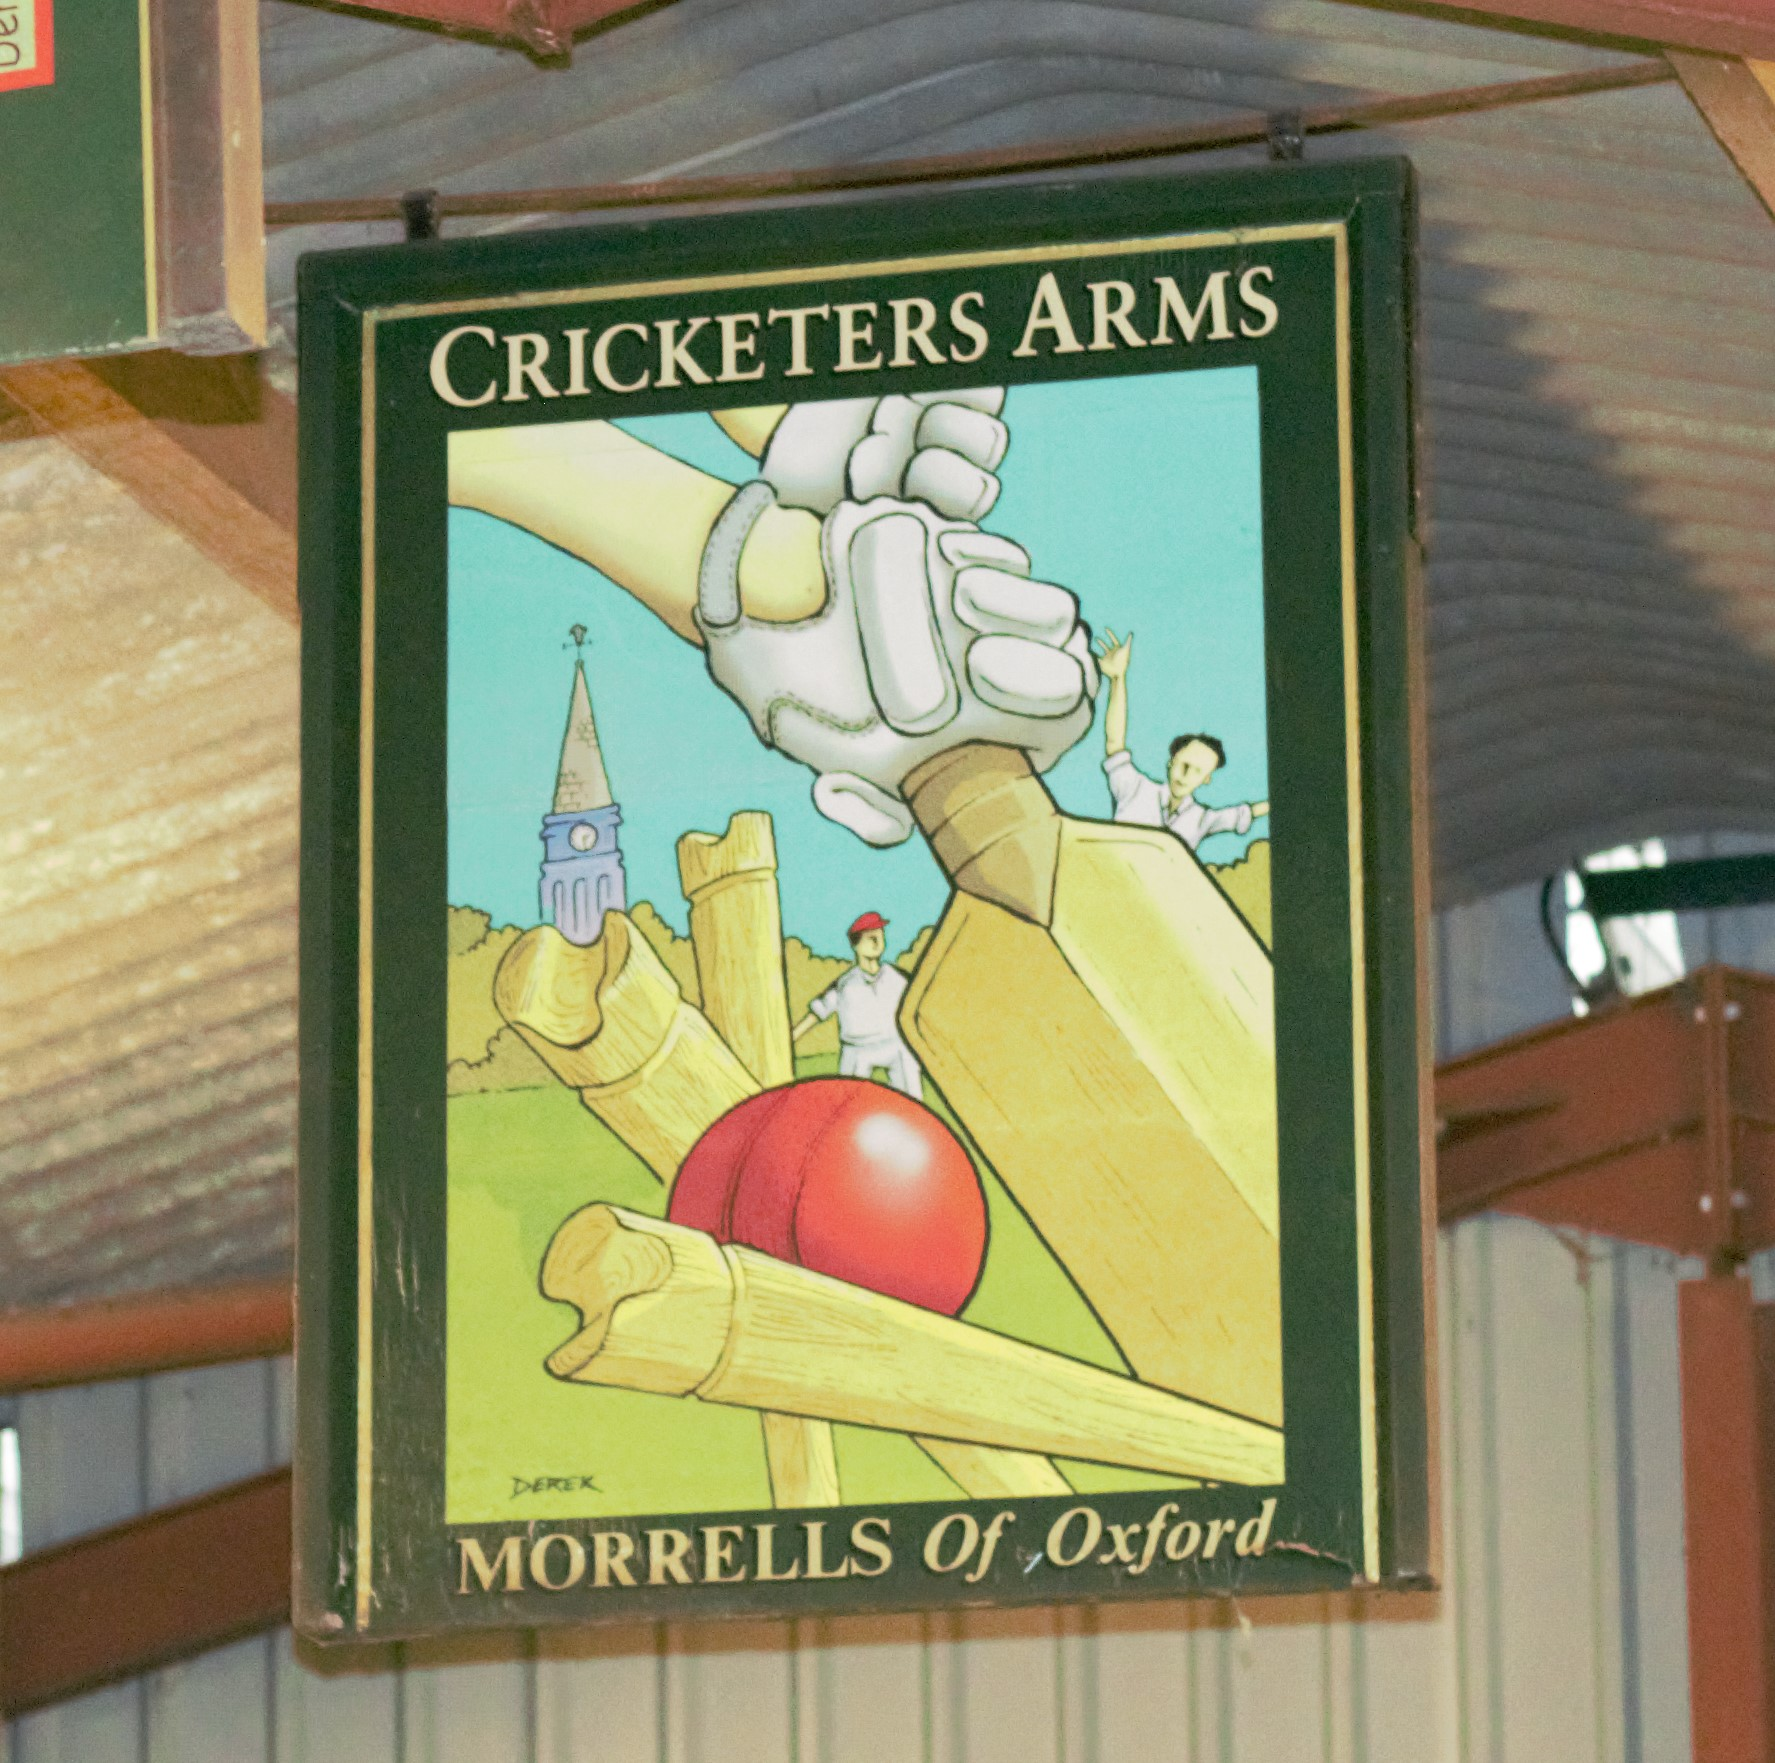 Cricketers Arms double sided pub sign by Morrells of Oxford